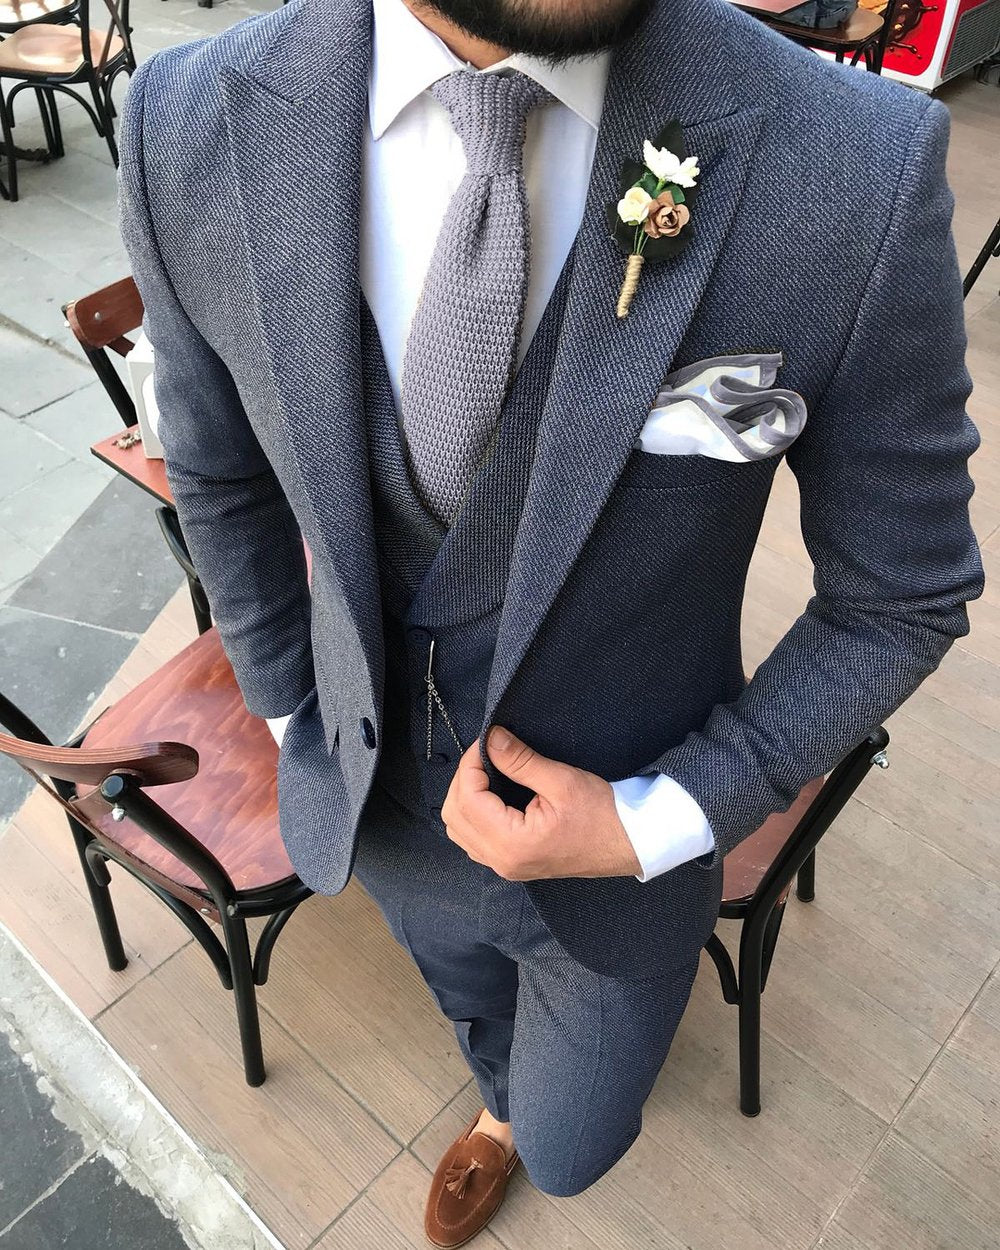 Steel Tie and Dual Colour Pocket Square